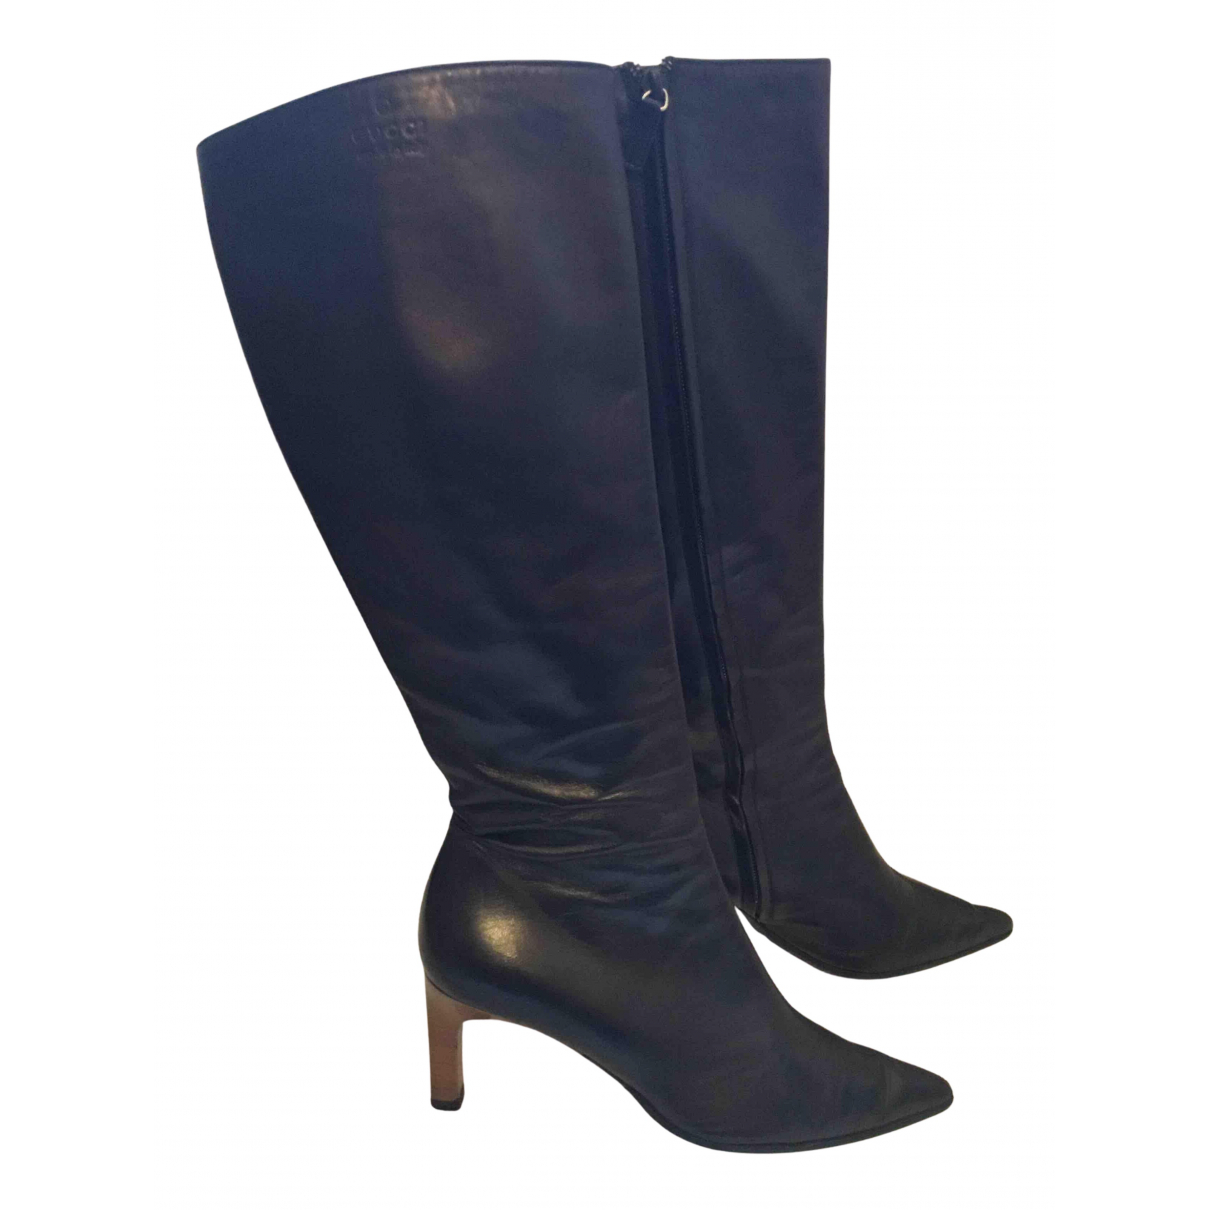 Gucci N Black Leather Boots for Women 38 EU